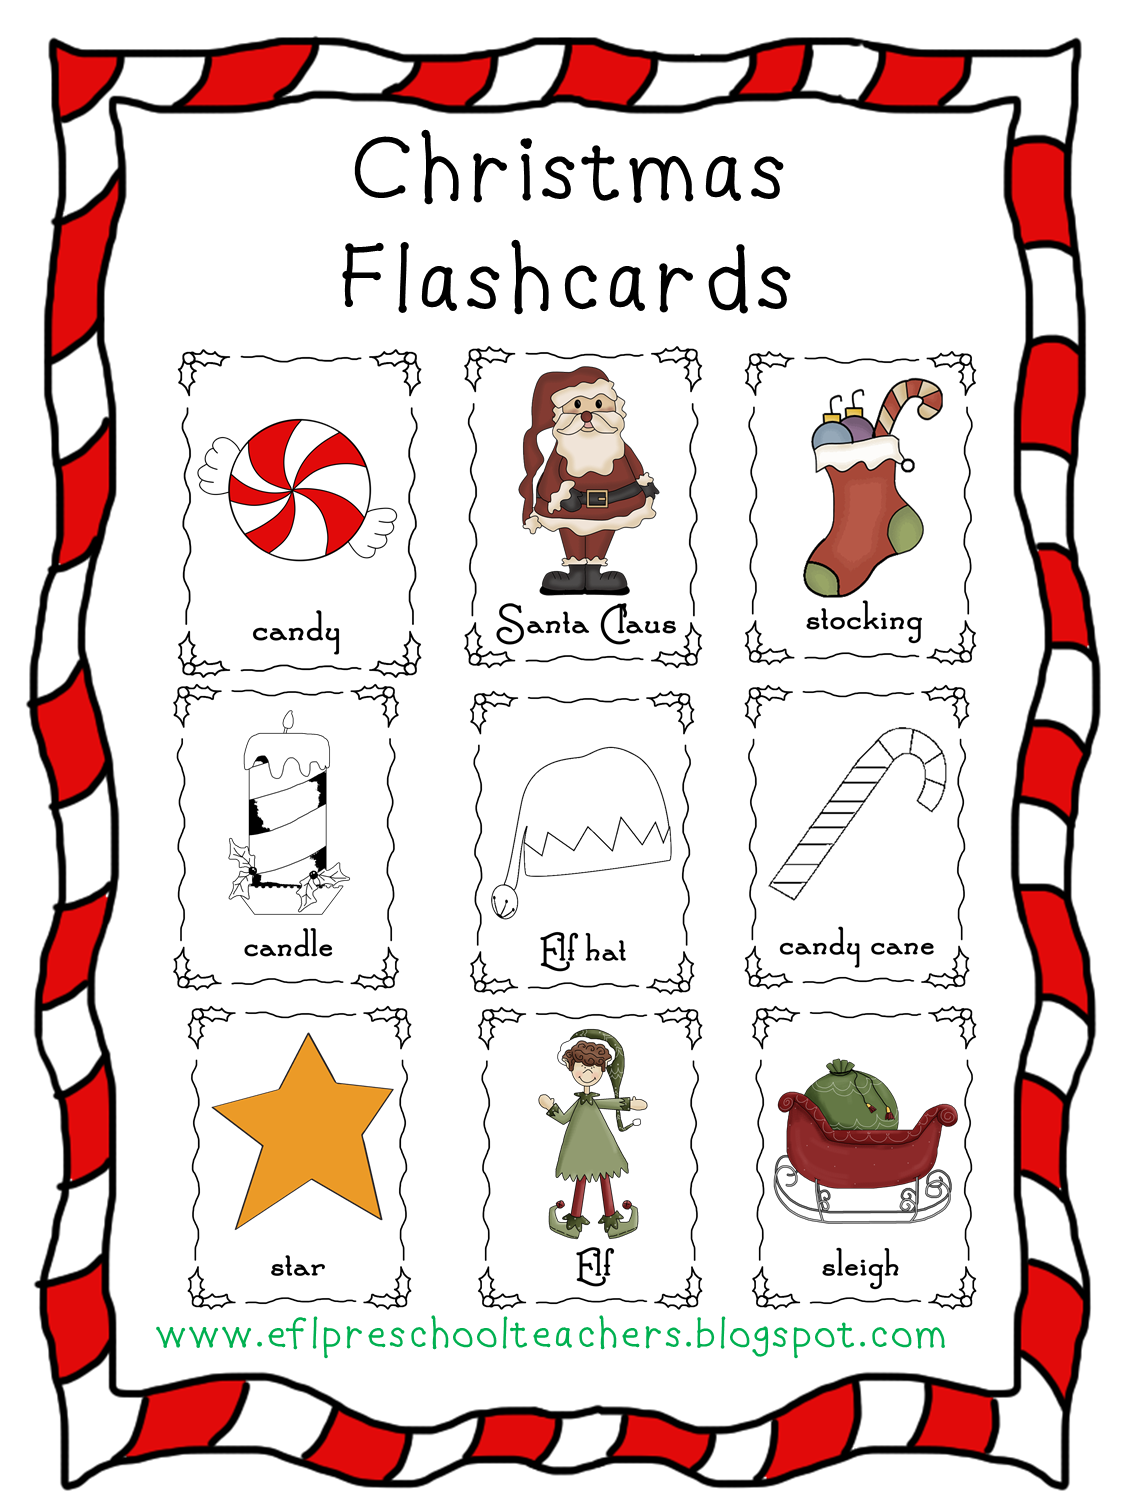 Esl Efl Preschool Teachers Christmas